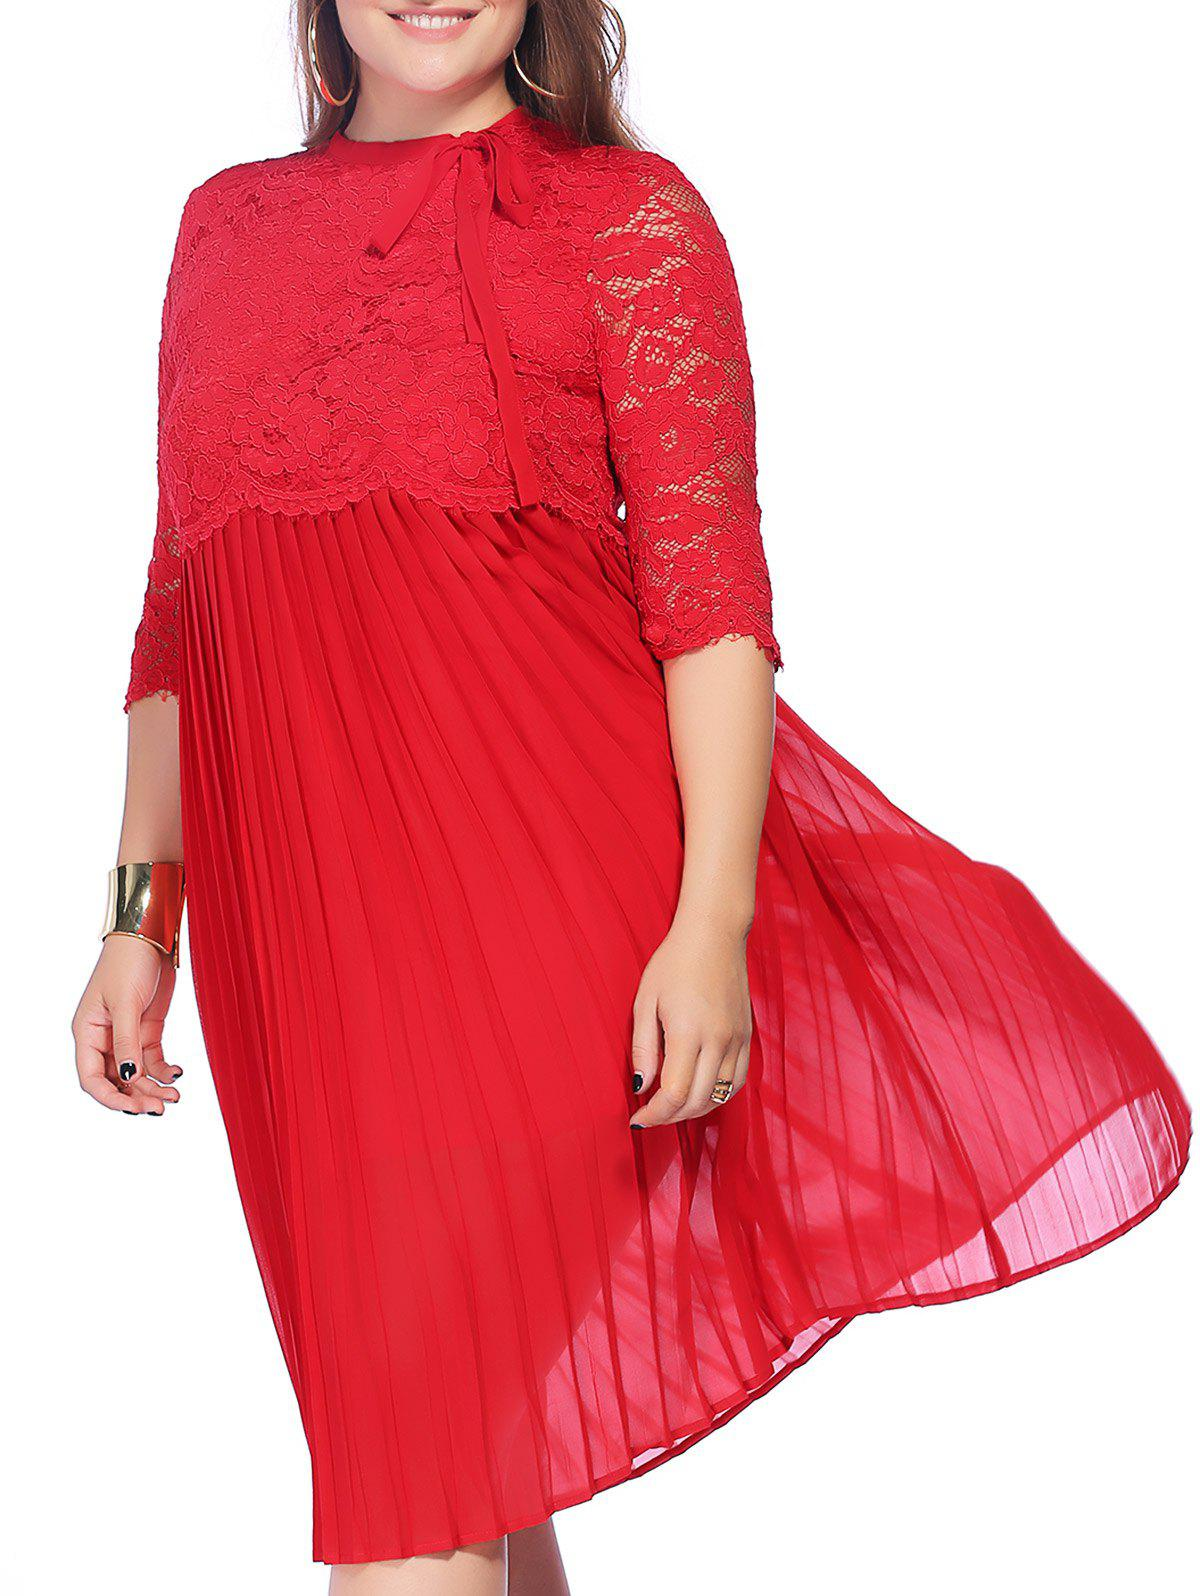 Sweet Plus Size Pleated 3/4 Sleeve Lace Design Women's Prom Dress - RED 5XL